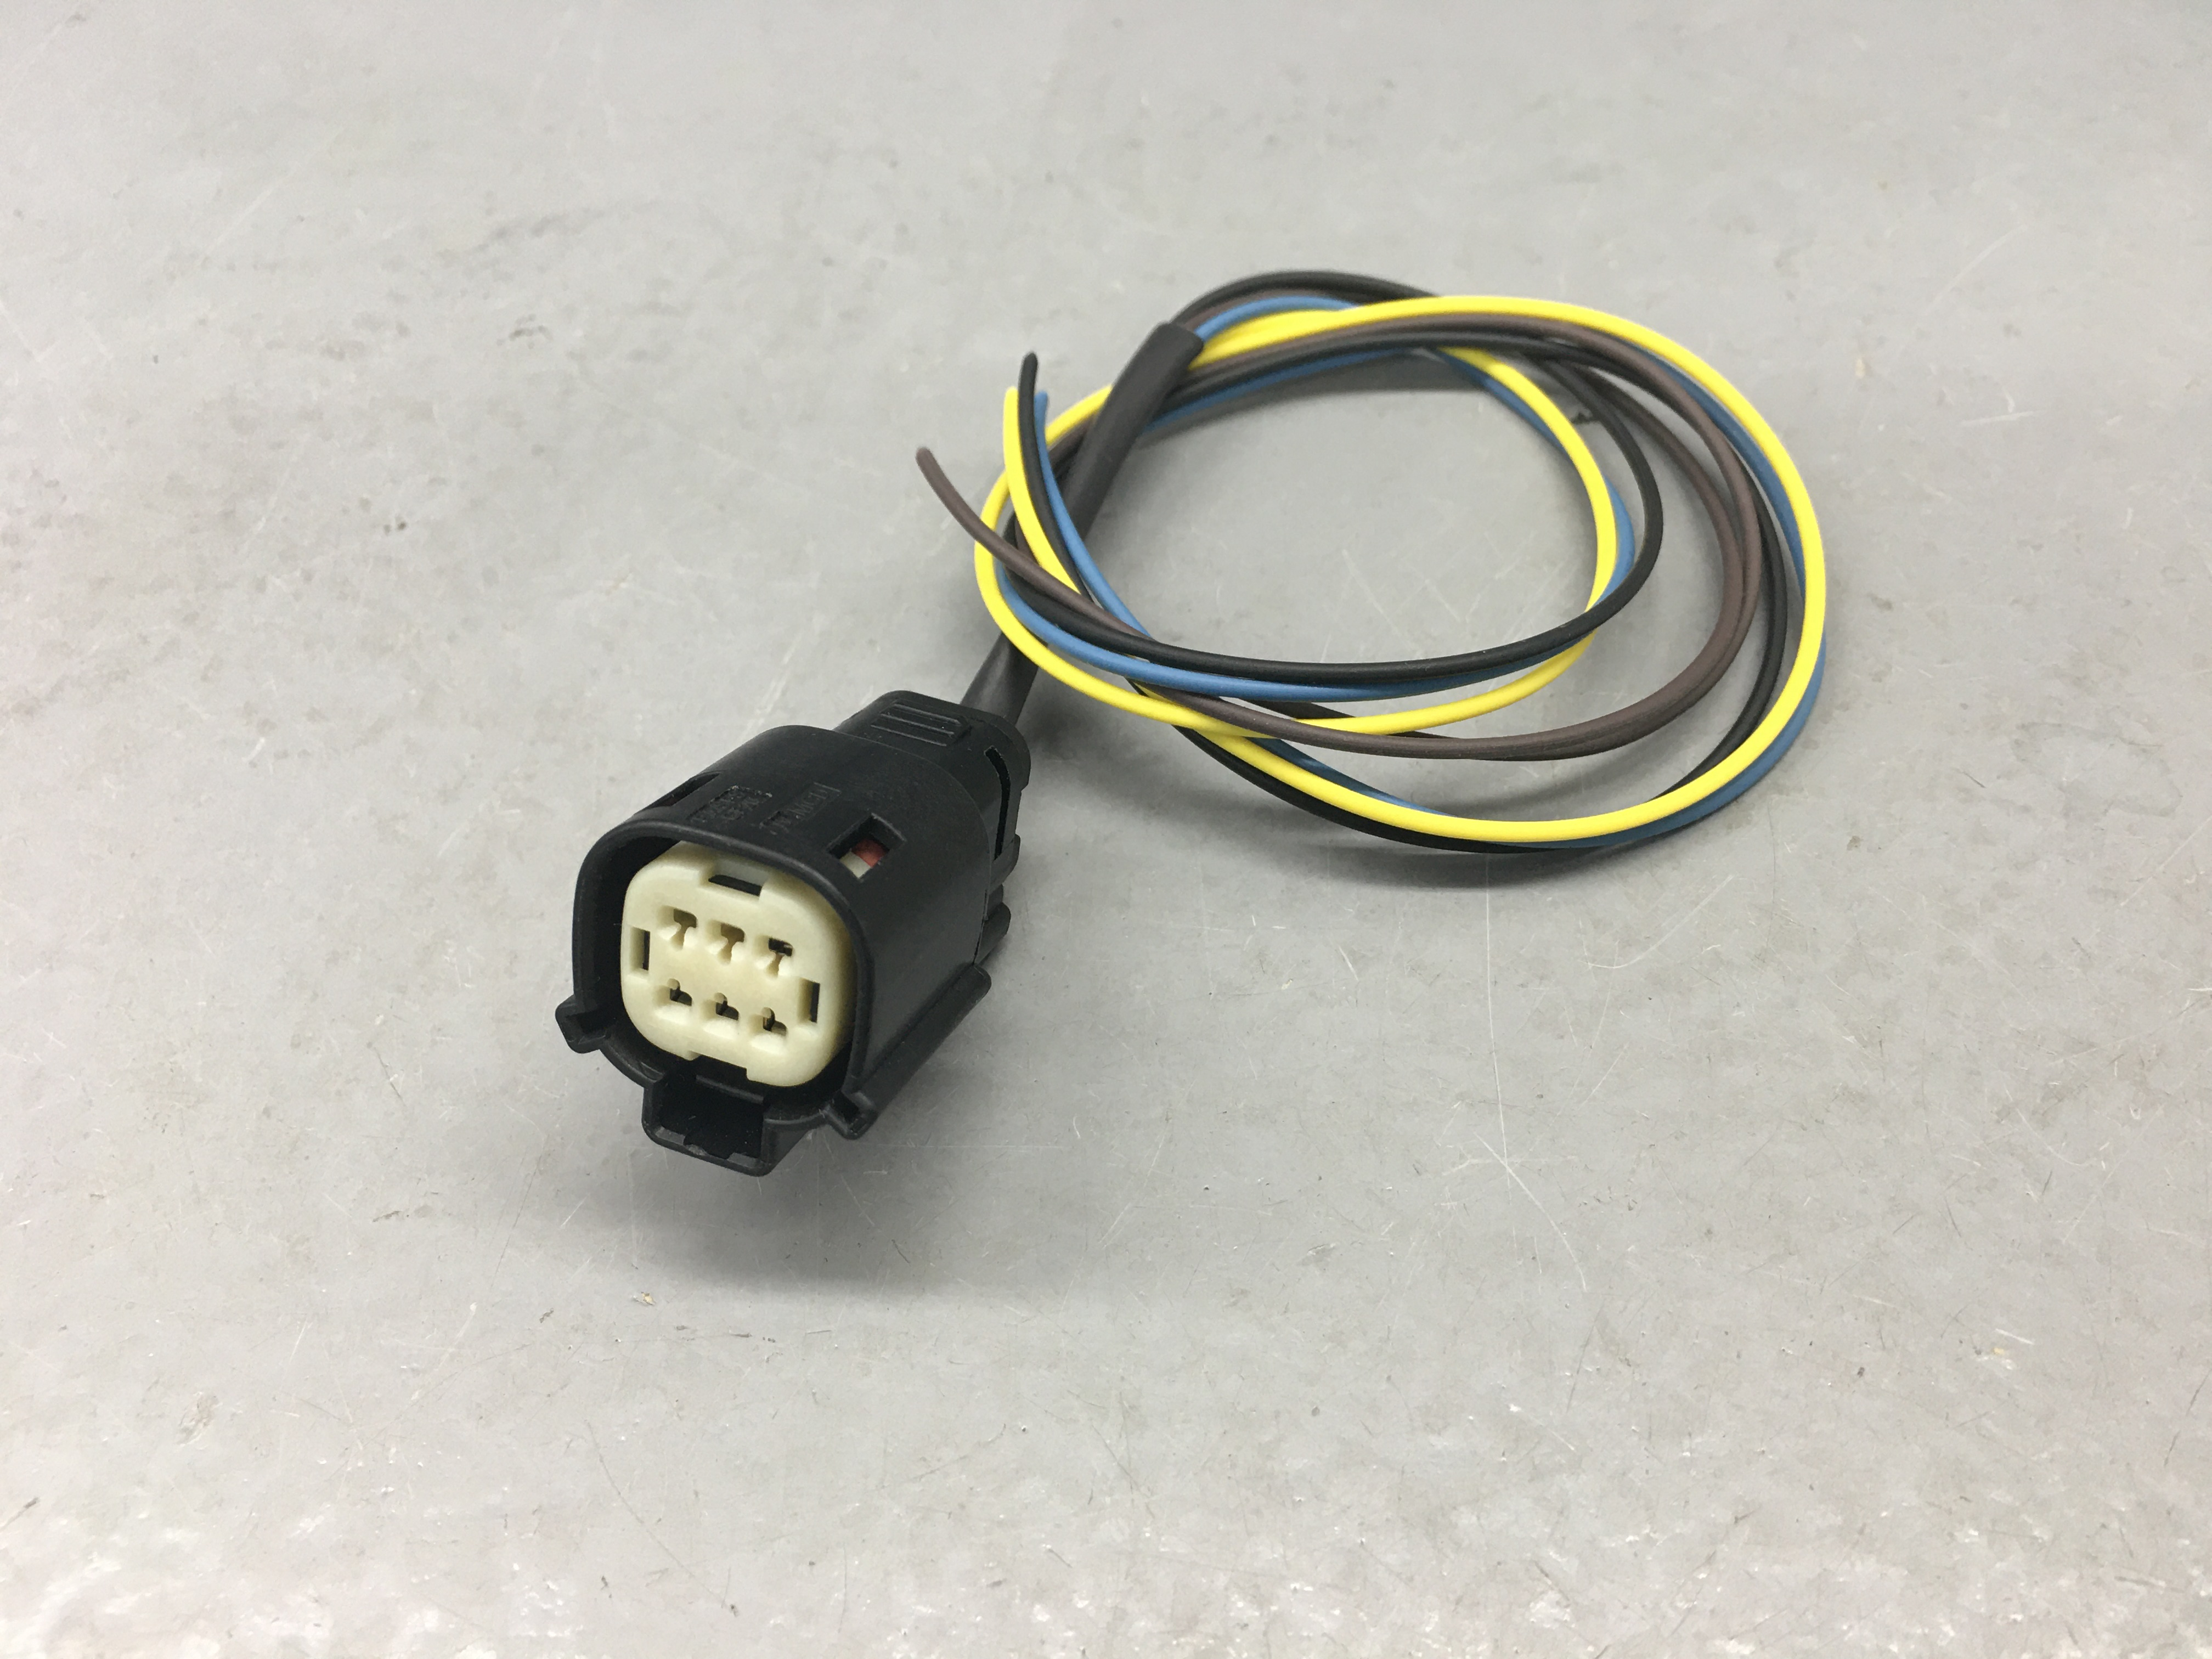 Backup Camera Wiring Pigtail For 2017-2021 Ford F250 F350 F450 Super Duty  Trucks | Ford F 250 Xl Super Duty Wiring Harness |  | Bob's Automotive Mirrors